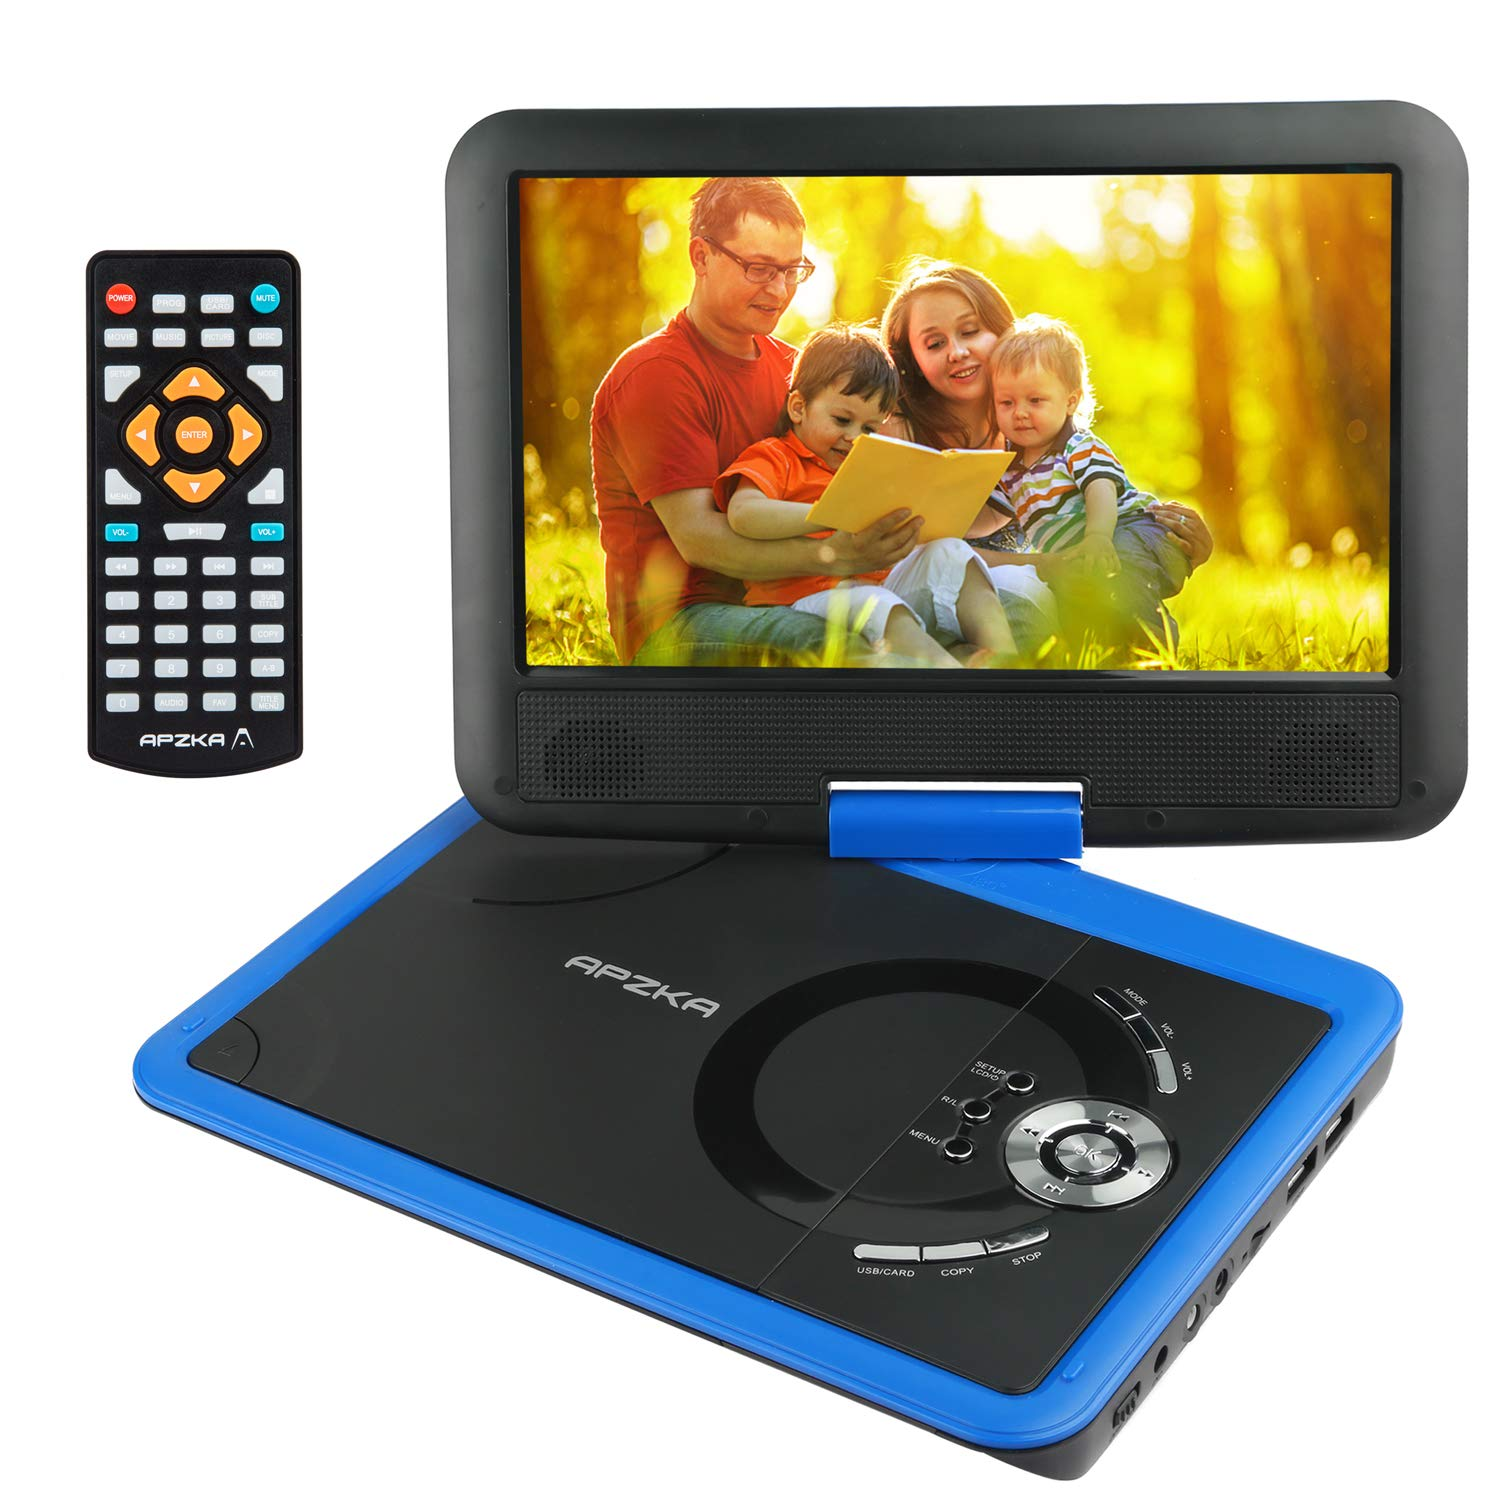 Apzka 11.5'' Portable DVD Player with Rechargeable Battery, Game Joystick and Car Charger, 9.5 Inch Internal Swivel Screen SD Card Slot and USB Port, Use via Remote Control and Menu Key, Blue